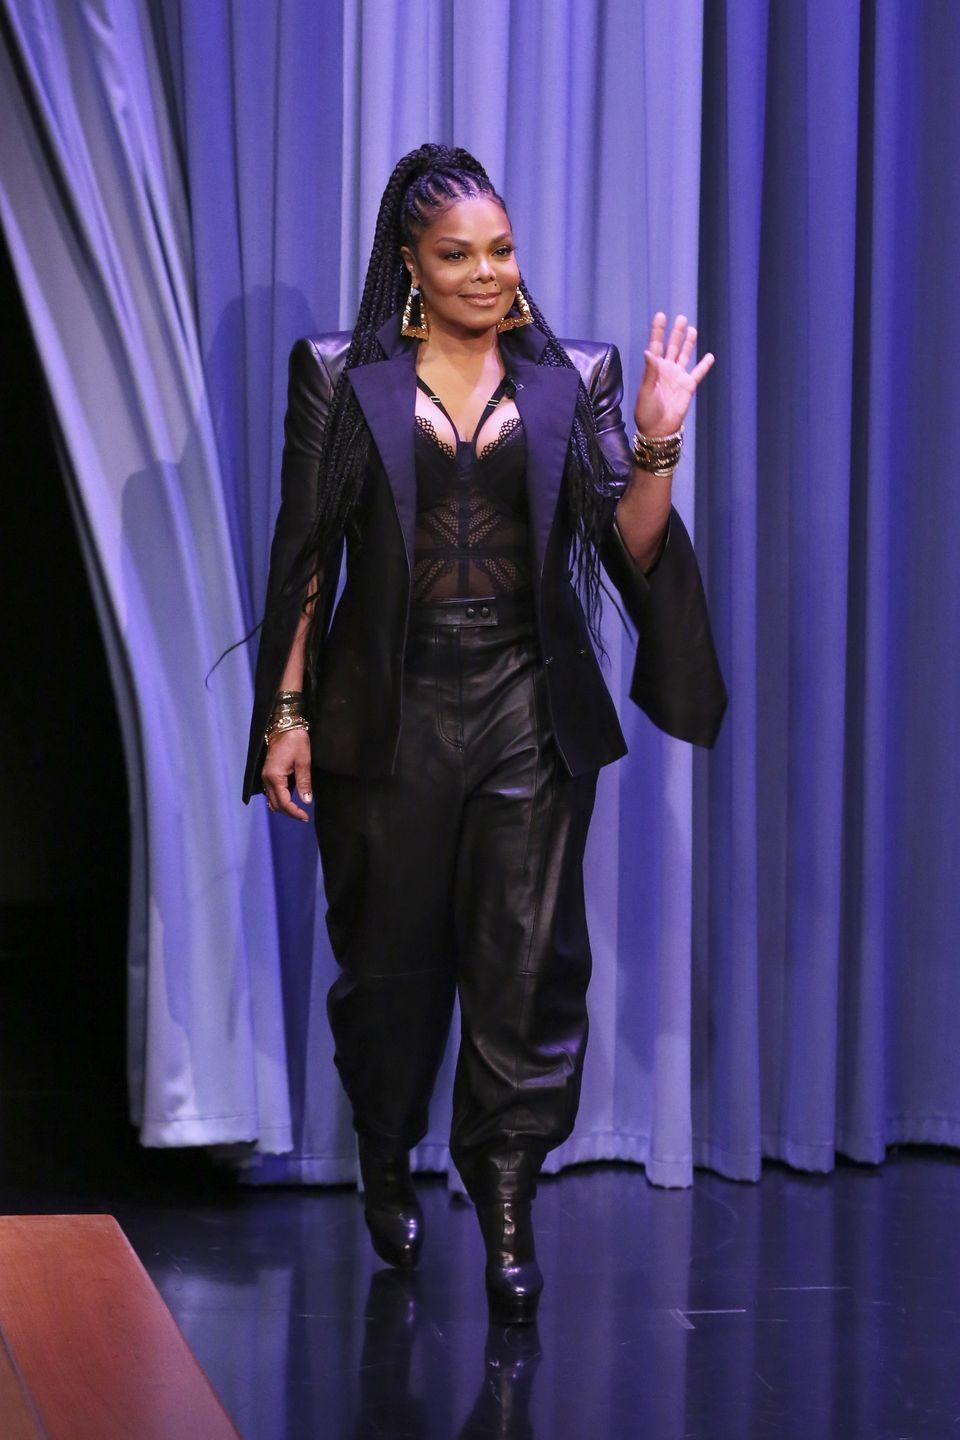 """<p>Going on tour takes a certain level of fitness—and Janet makes it look easy, even at 54. Her trainer, Paula Sybliss revealed to <a href=""""https://www.eonline.com/news/895250/janet-jackson-s-trainer-reveals-how-the-new-mom-lost-70-pounds-without-any-cardio"""" rel=""""nofollow noopener"""" target=""""_blank"""" data-ylk=""""slk:E! News"""" class=""""link rapid-noclick-resp""""><em>E! News</em></a> that they started prepping for life on the road (with a goal to shape up) just six weeks after Janet gave birth to daughter Eissa in January 2017. Thanks to weight training (not to mention hours spent dancing on stage), Jackson <a href=""""https://www.cnn.com/2017/11/21/entertainment/janet-jackson-weight-loss"""" rel=""""nofollow noopener"""" target=""""_blank"""" data-ylk=""""slk:lost 70 pounds"""" class=""""link rapid-noclick-resp"""">lost 70 pounds</a>.<br></p>"""